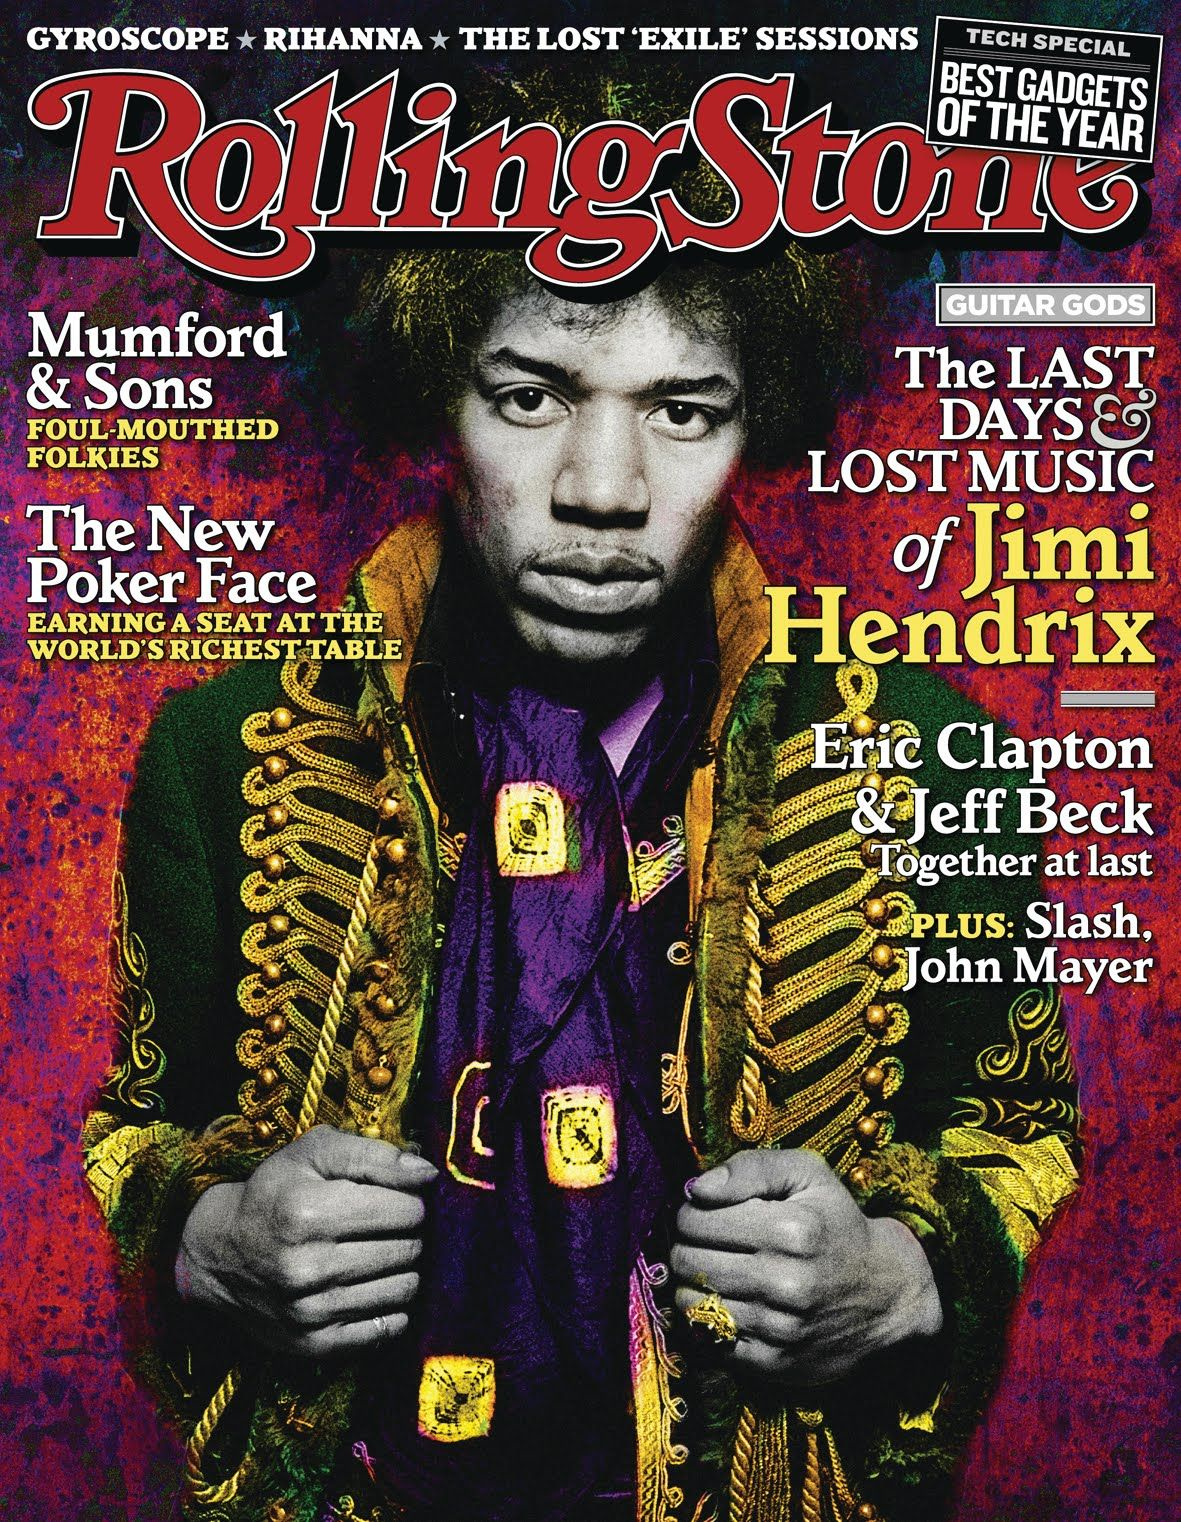 The last days and lost music of Jimi Hendrix, featuring Mumfordand Sons - foul mouthed folkies! Rolling Stone magazine.